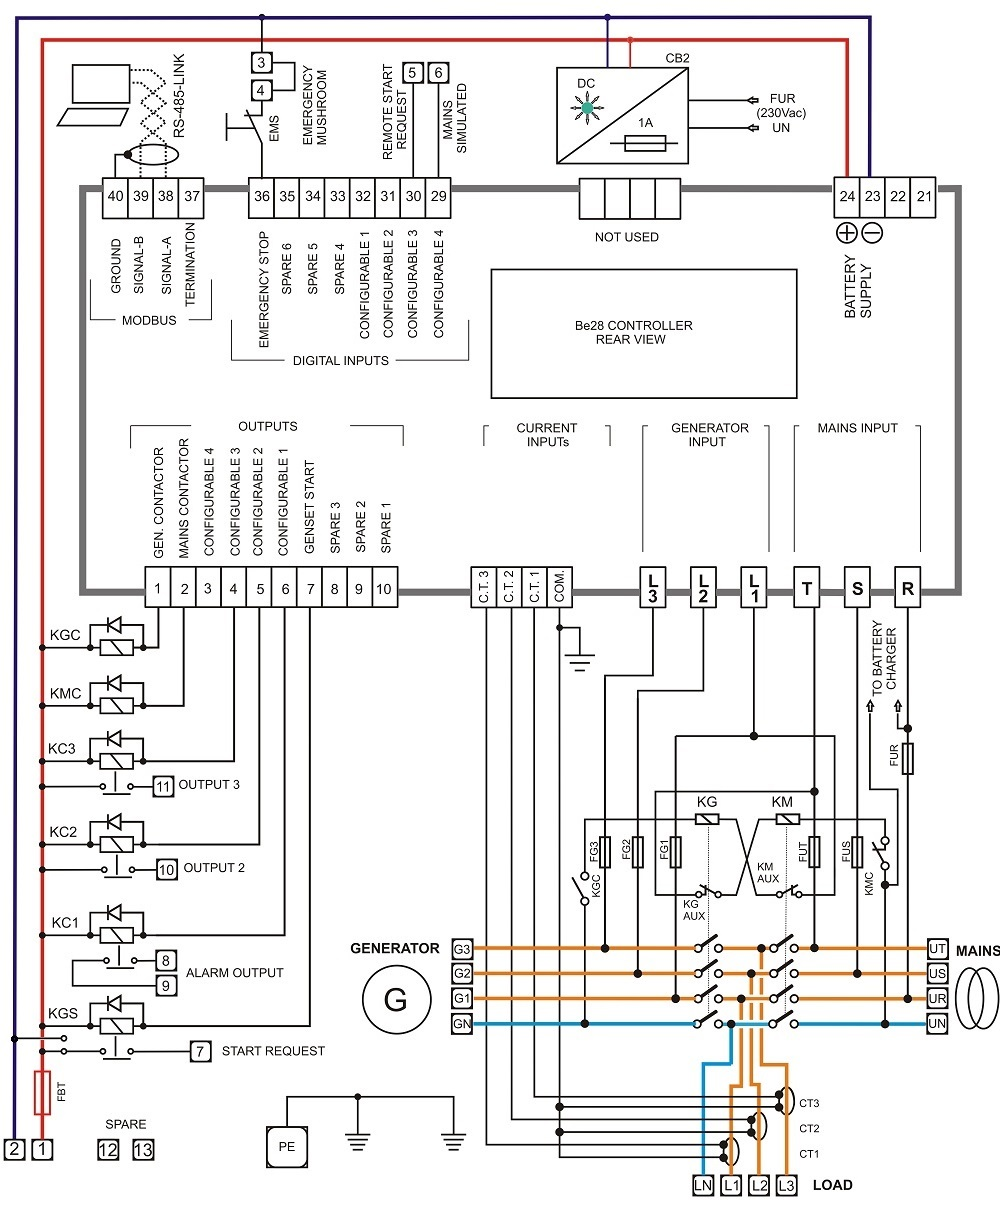 medium resolution of ats wiring diagram wiring diagram operationswiring diagram for ats wiring diagram sample ats wiring diagram ats